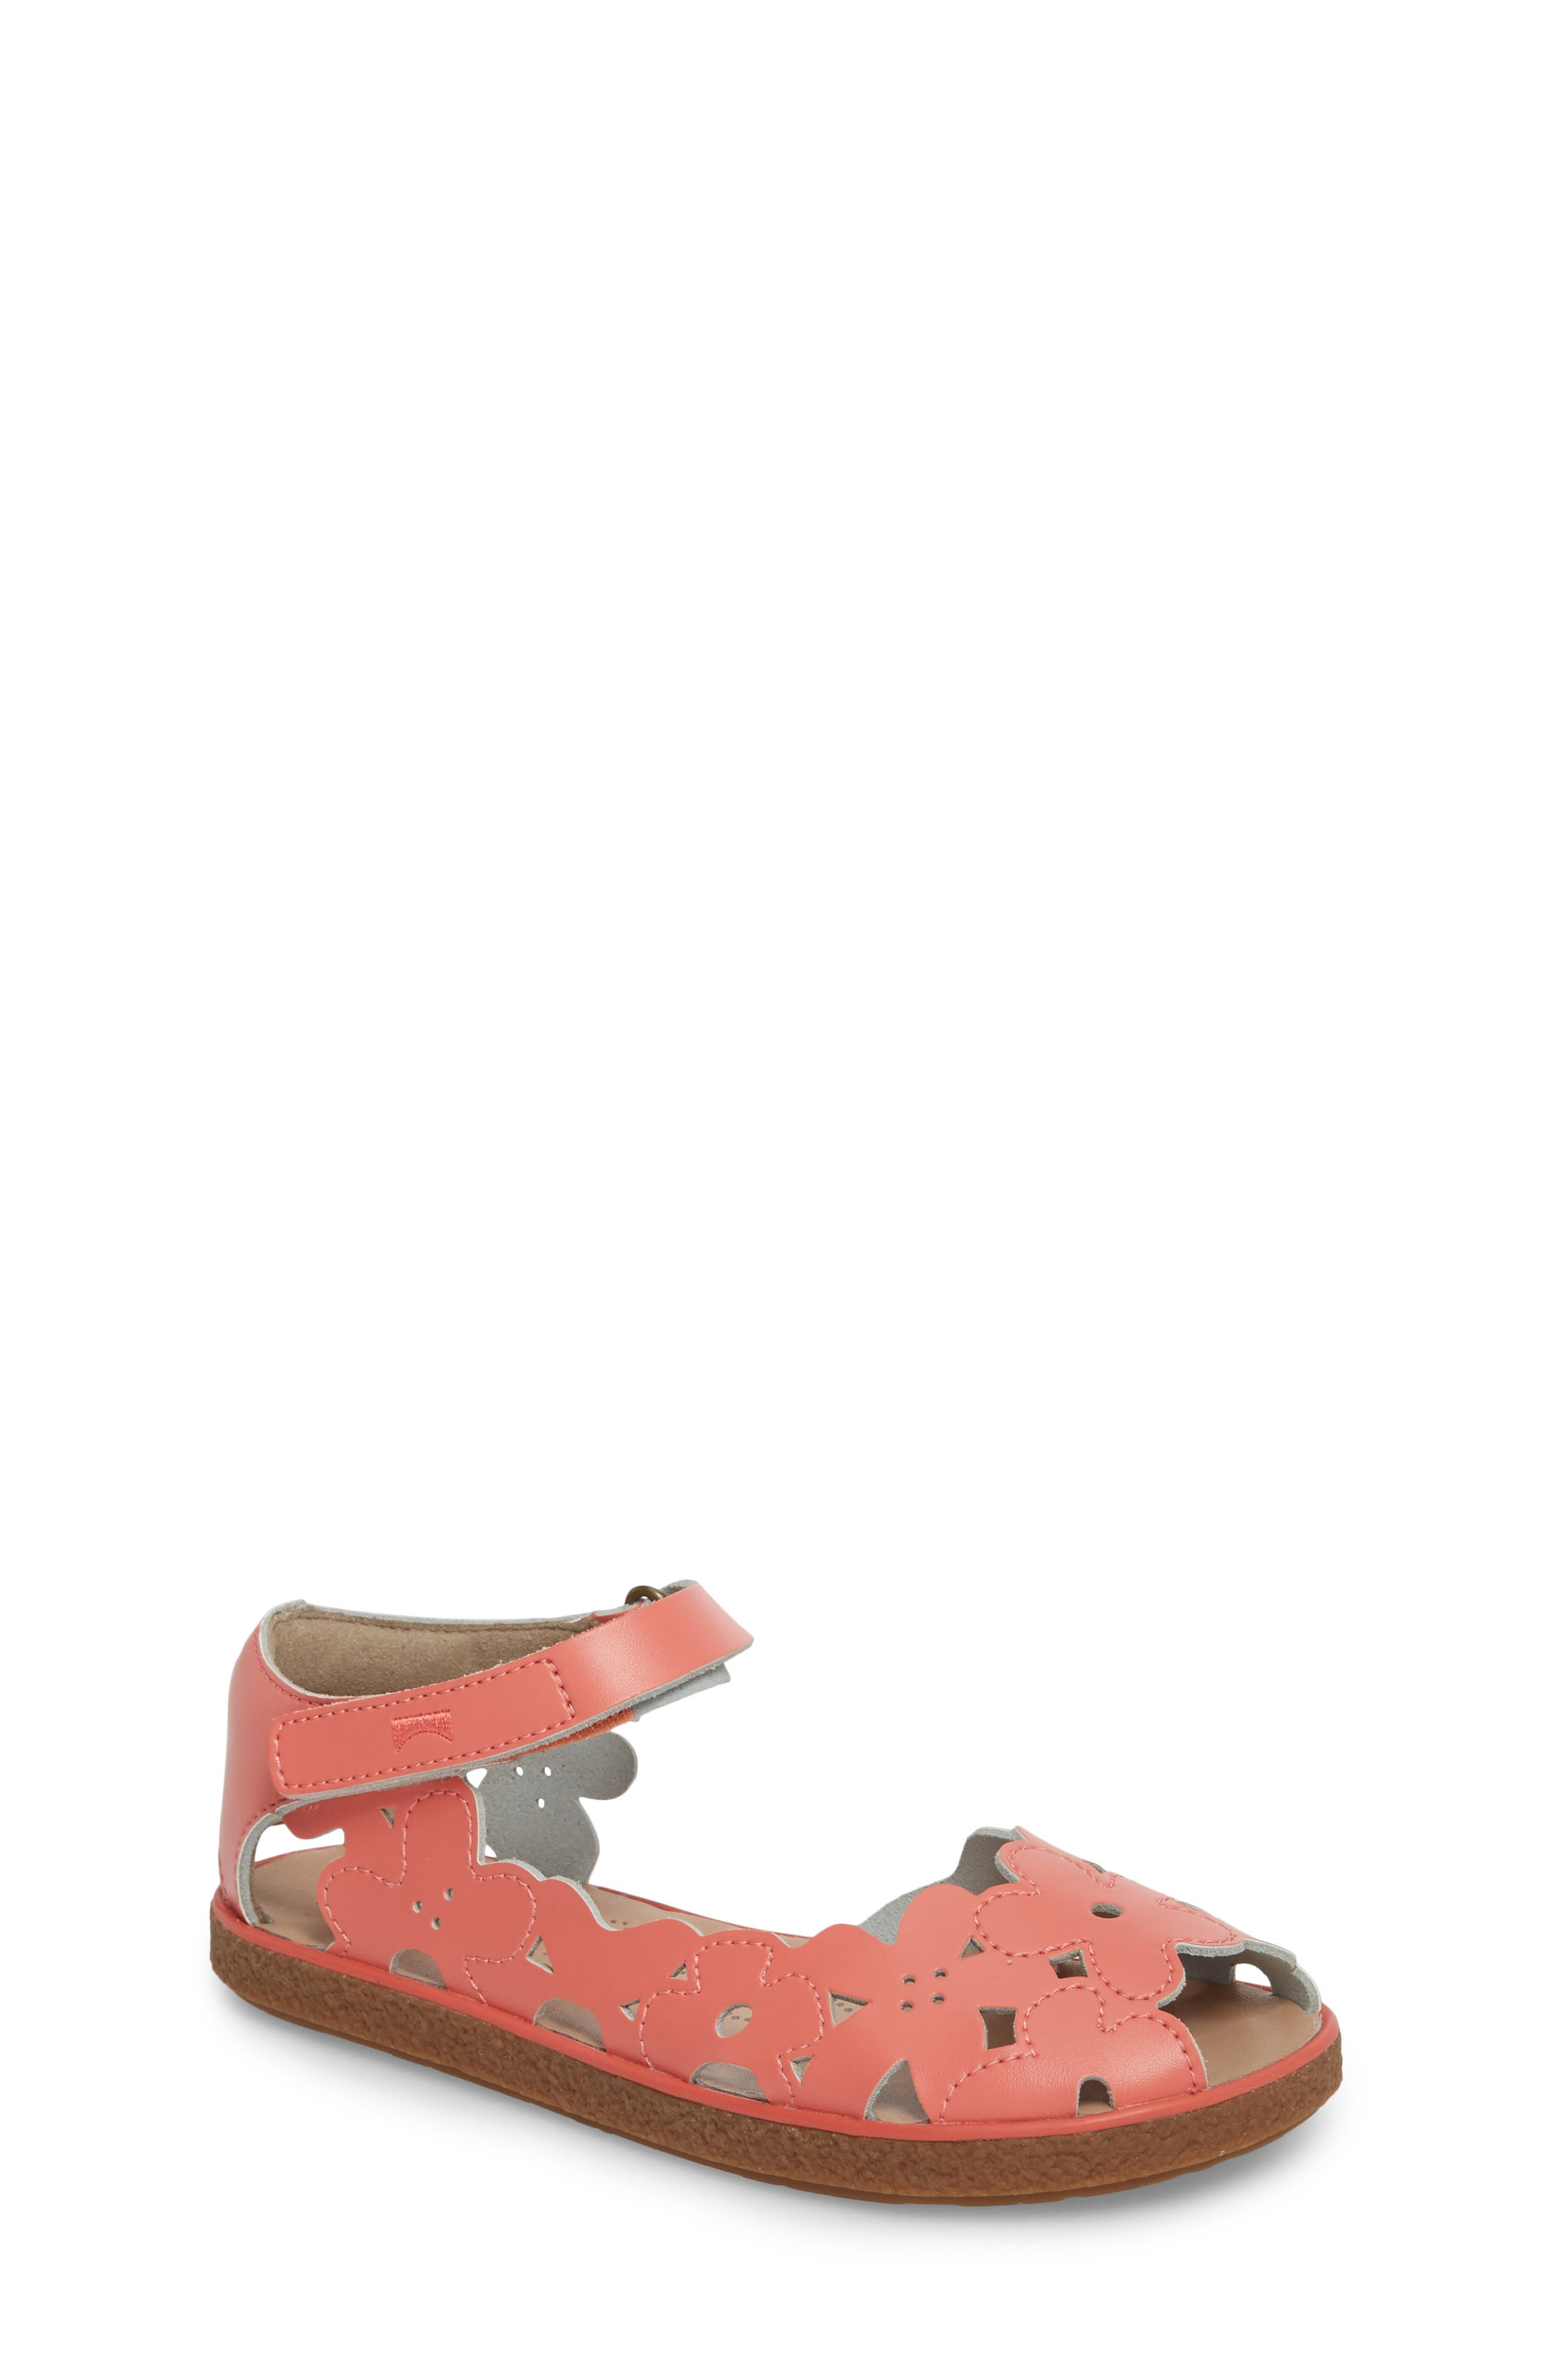 Twins Perforated Sandal,                         Main,                         color, Pink